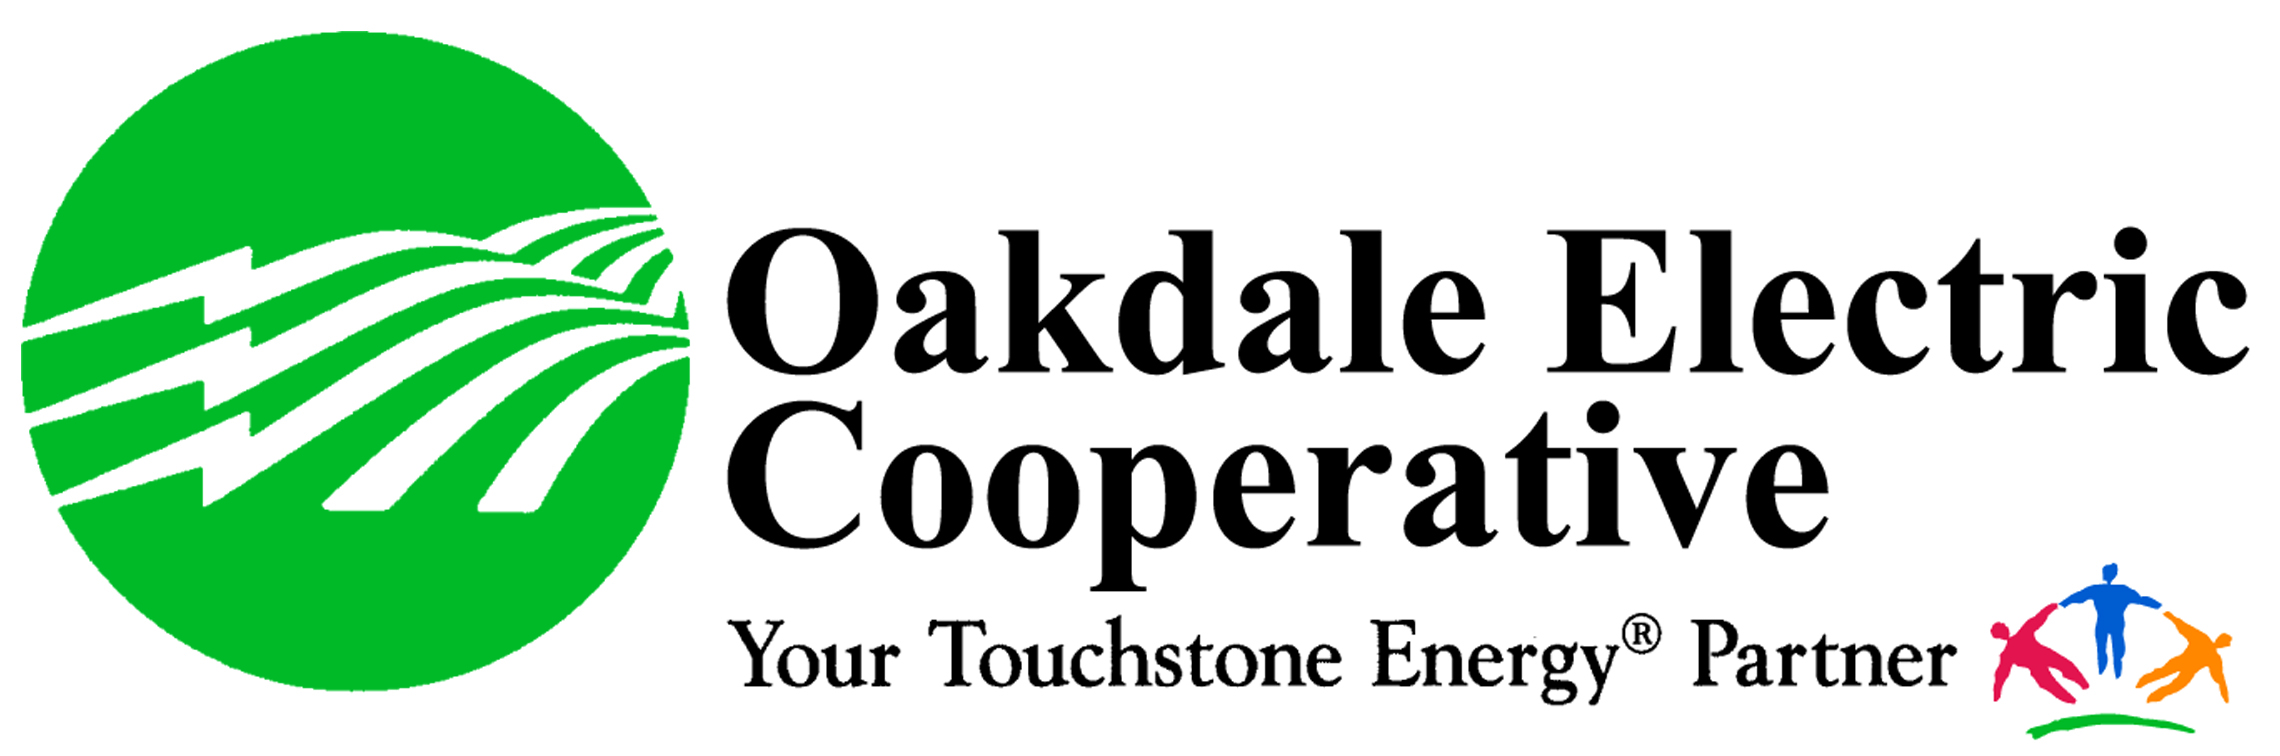 Oakdale Electric Cooperative Logo